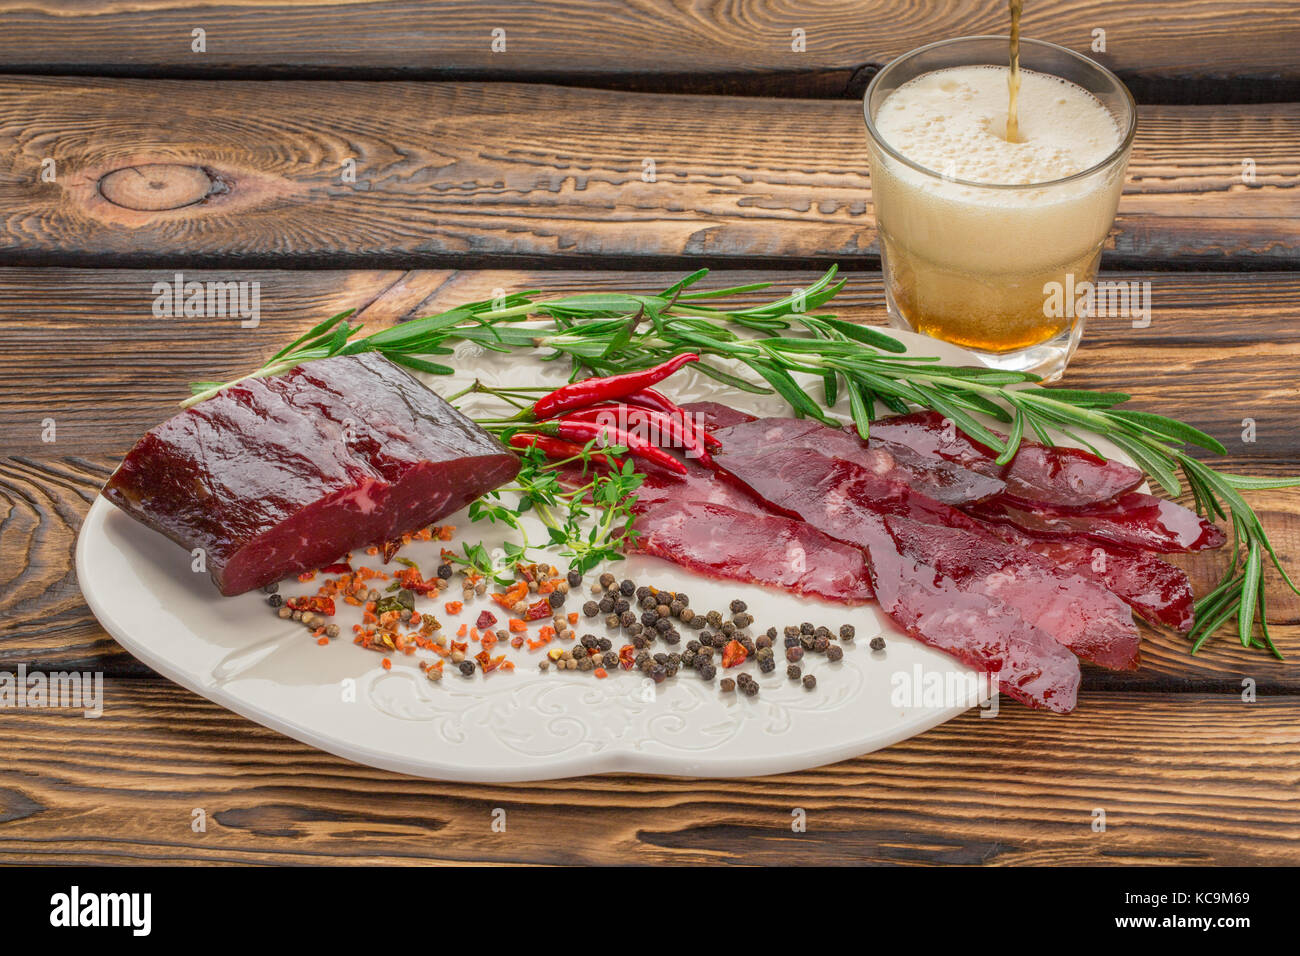 Dry meat with fresh herbs, chilli, condiments on a plate. beer is poured into a glass over wooden background. Beer Stock Photo